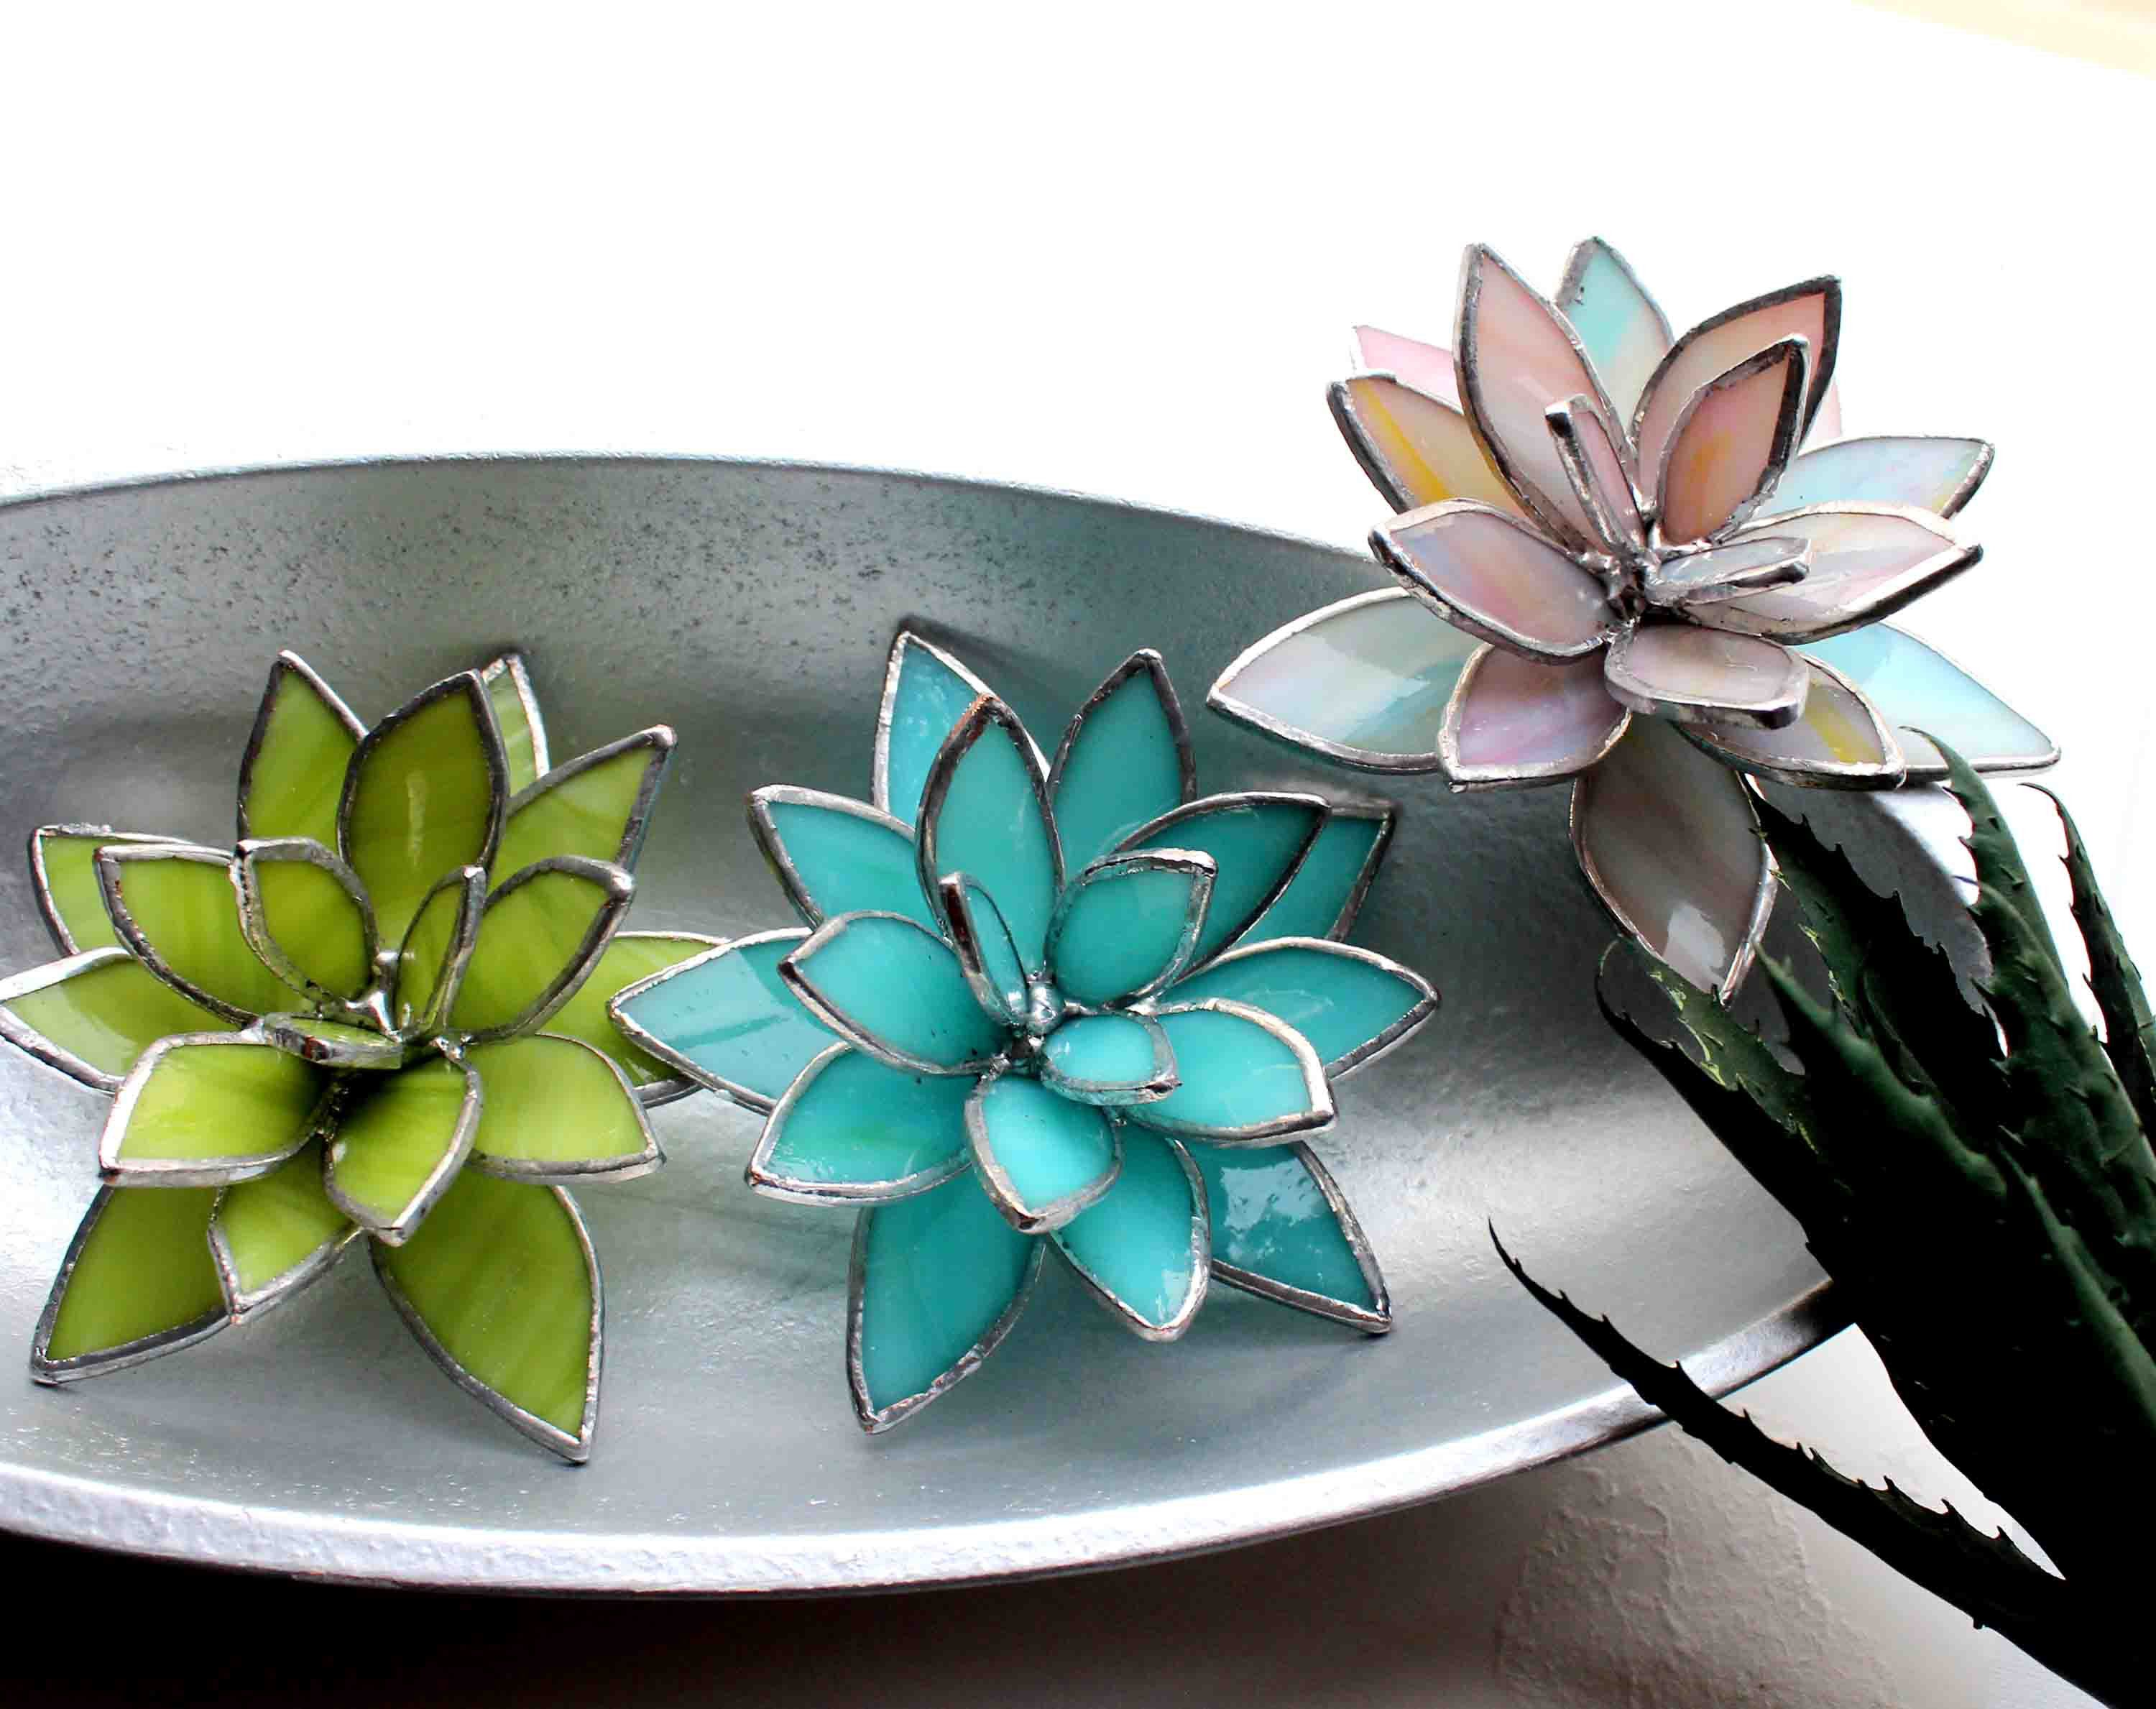 Photo of Spring Collection Stained Glass Succulents, Valentines Gifts for Her, Trending Succulents, Tabletop Decor, Home Accents, Wedding Table Decor